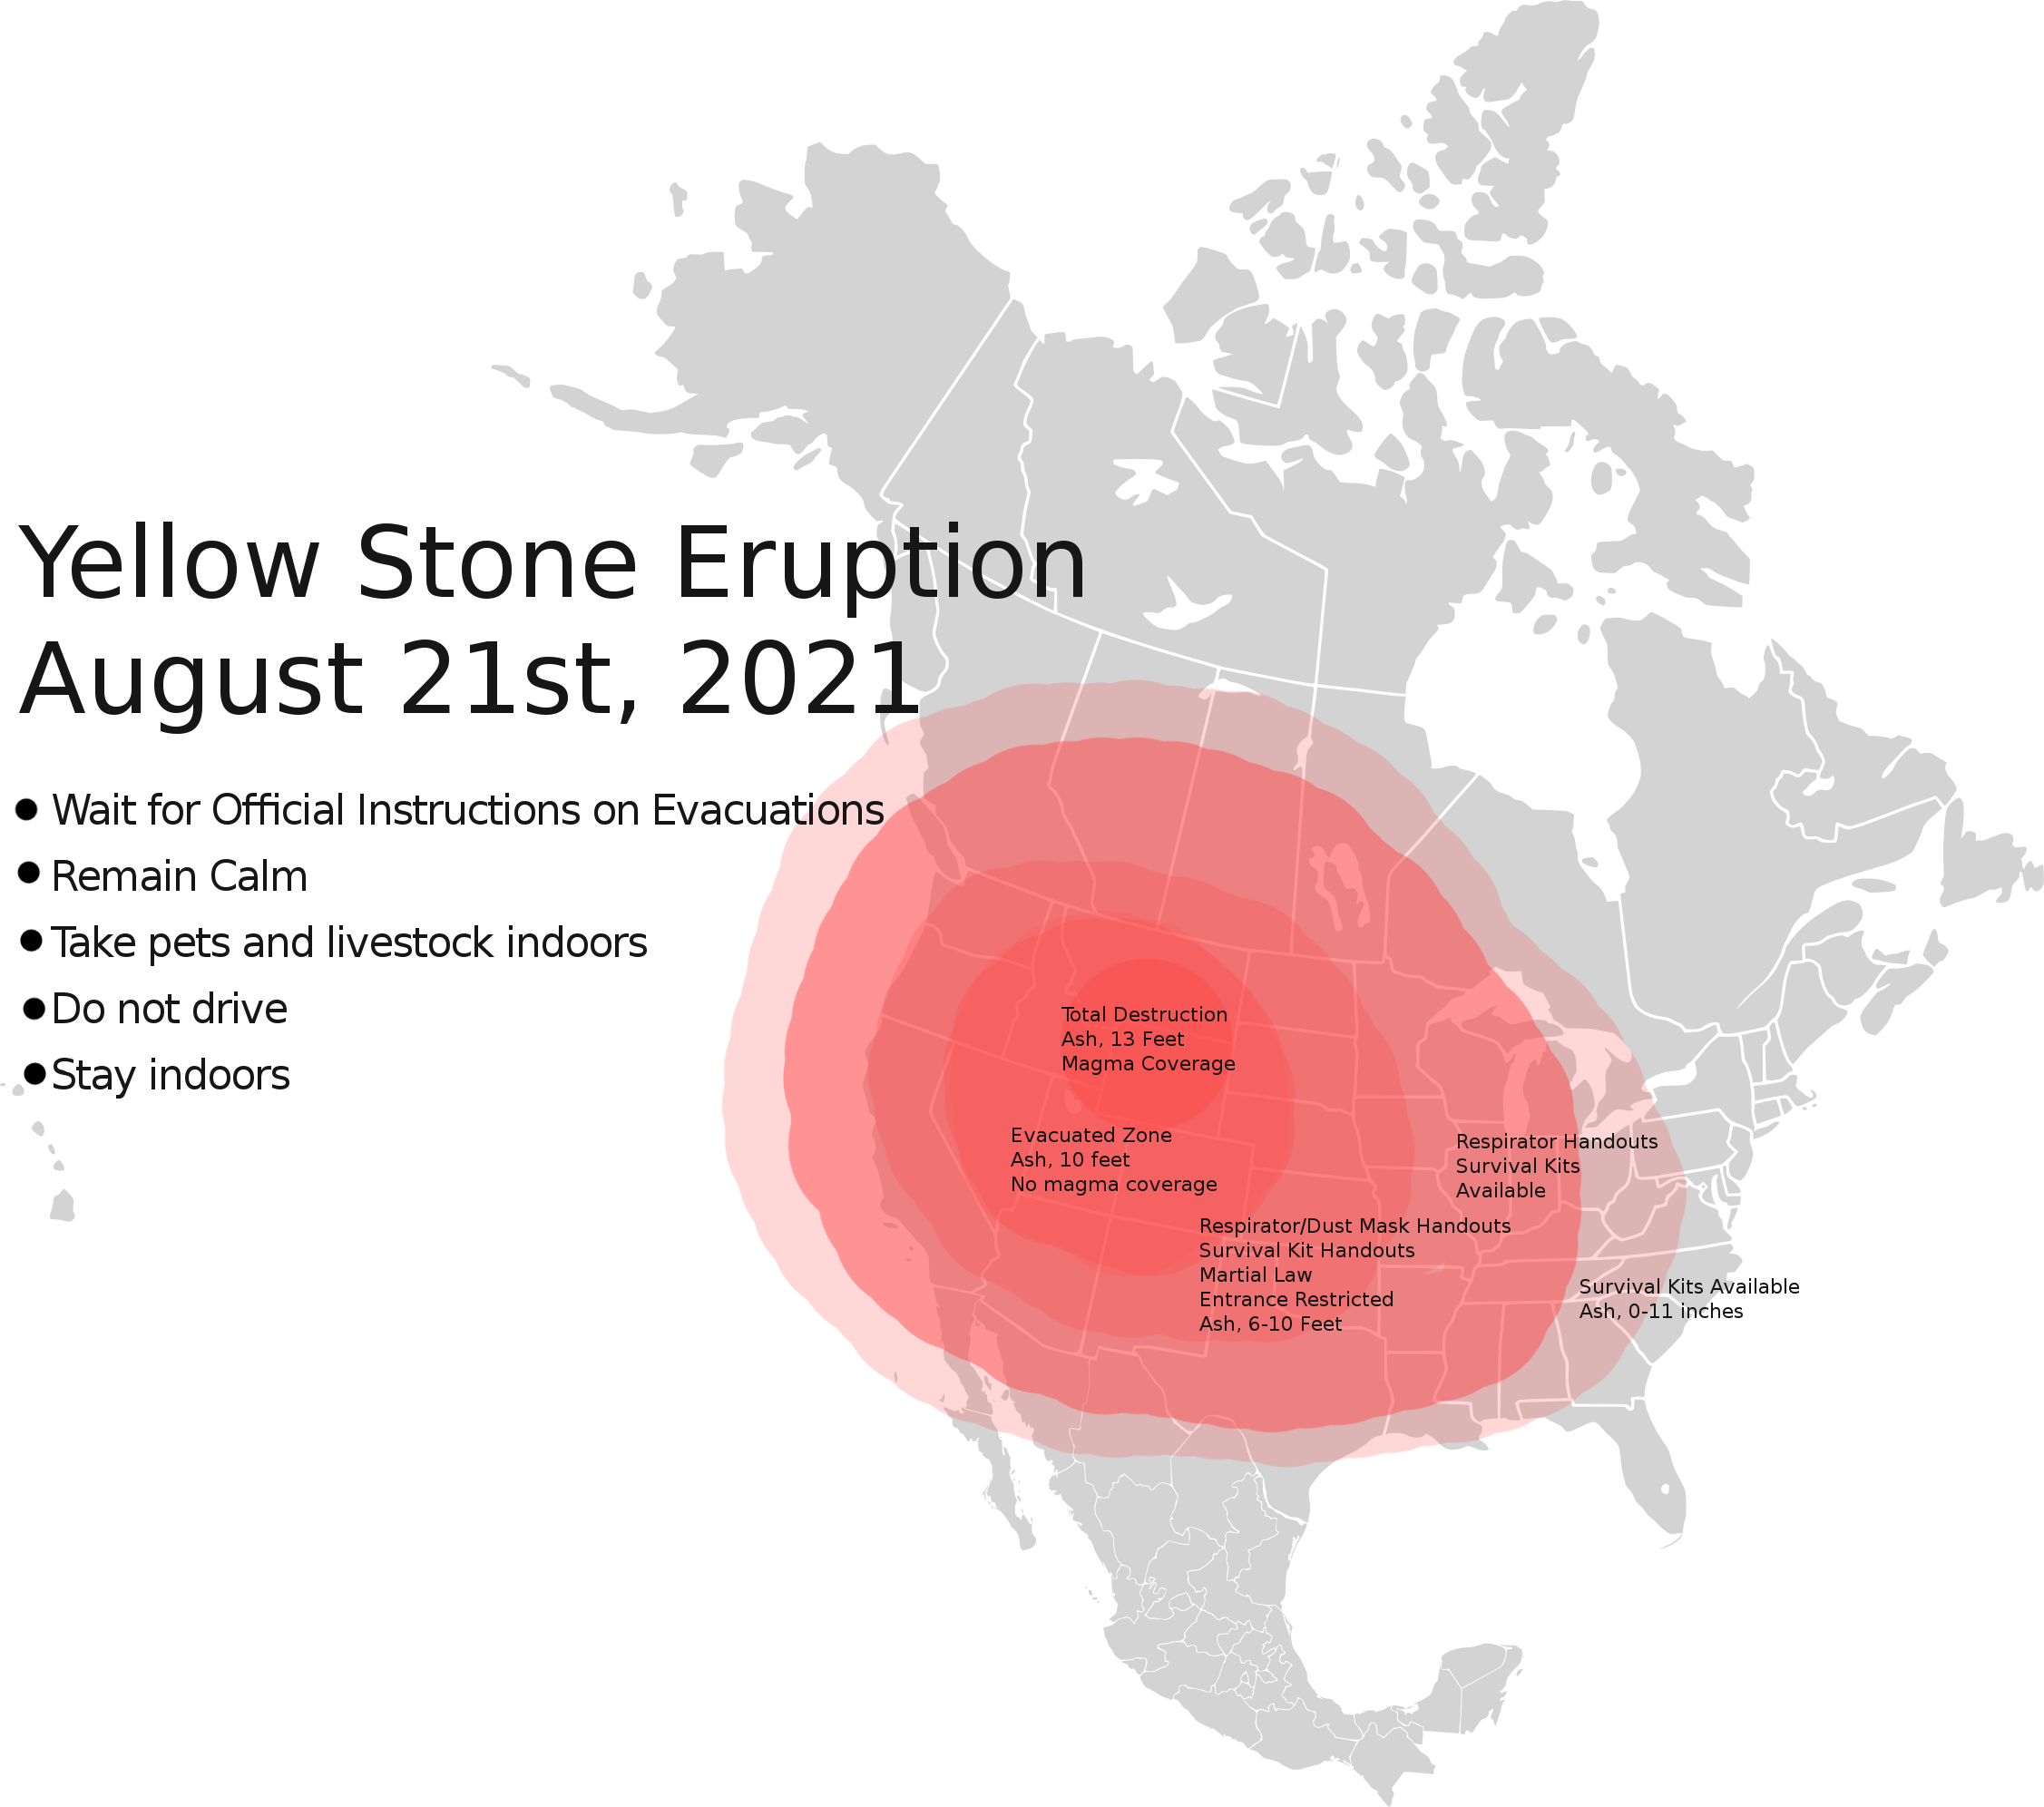 Yellowstone Eruption of 2021 by Mister-Ed-Fan on DeviantArt